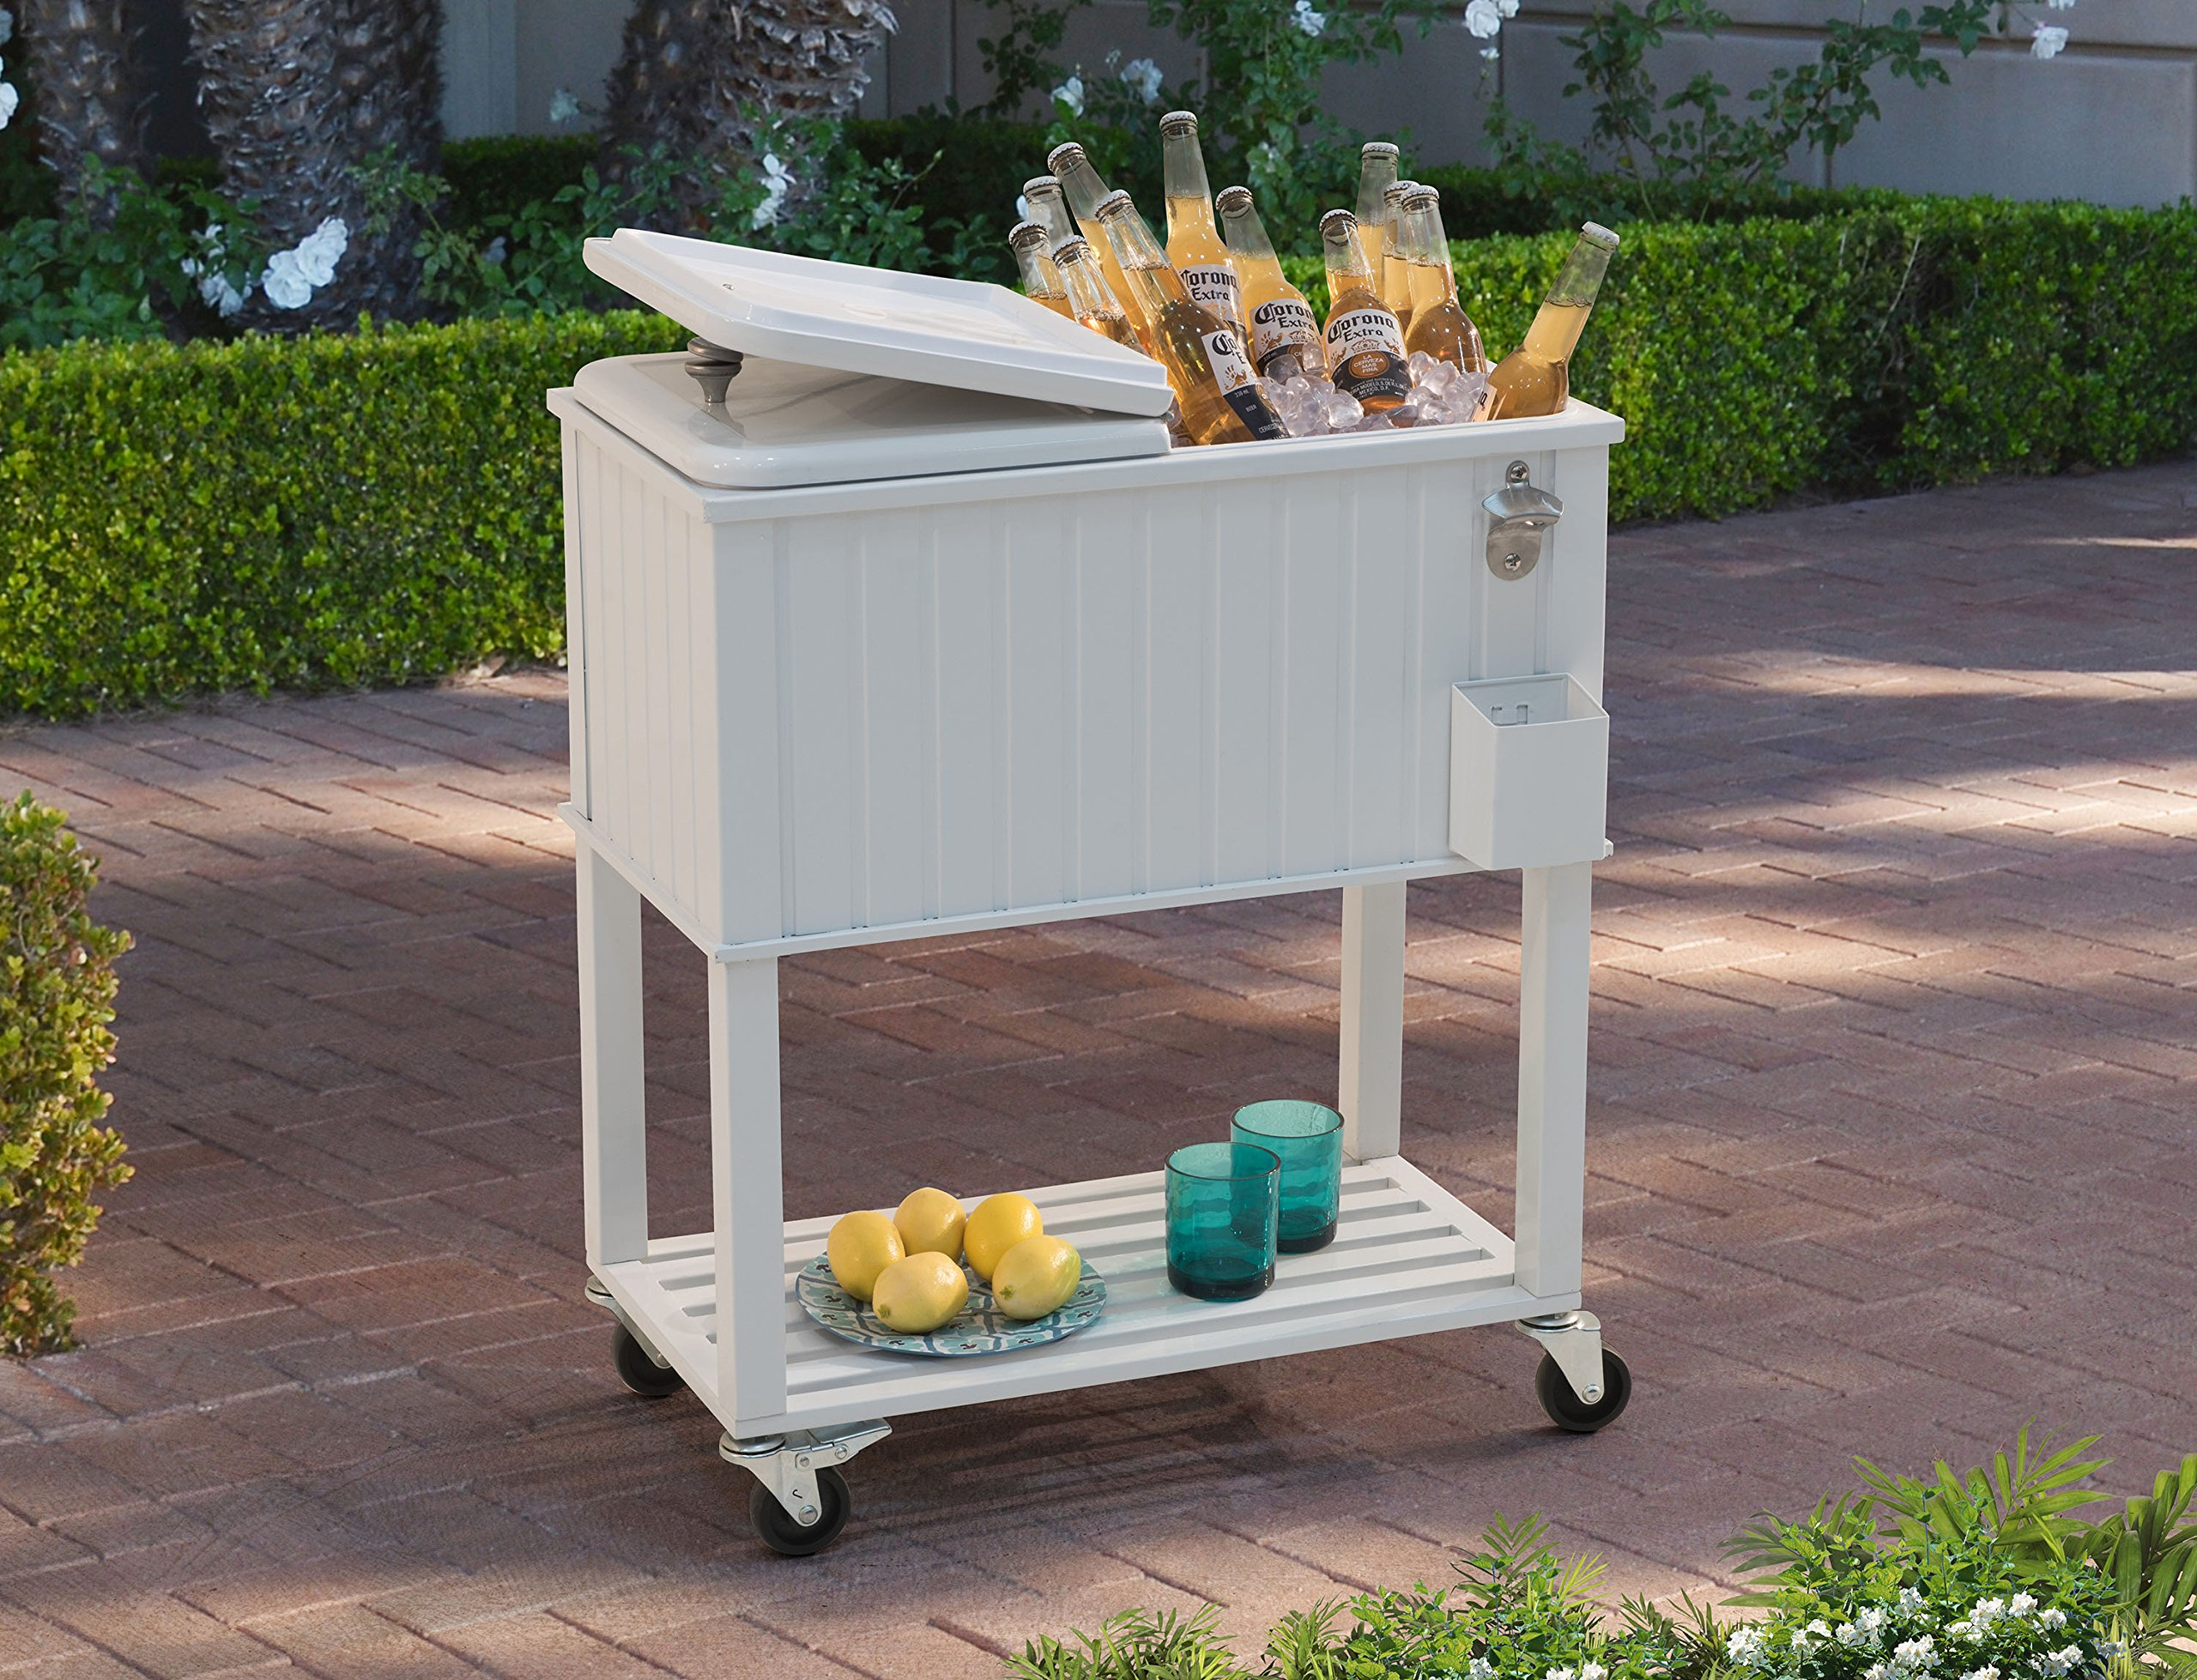 Sunjoy 60 quart Wheeled Beverage Cooler with Faux White Wood Finish with Shelf by sunjoy